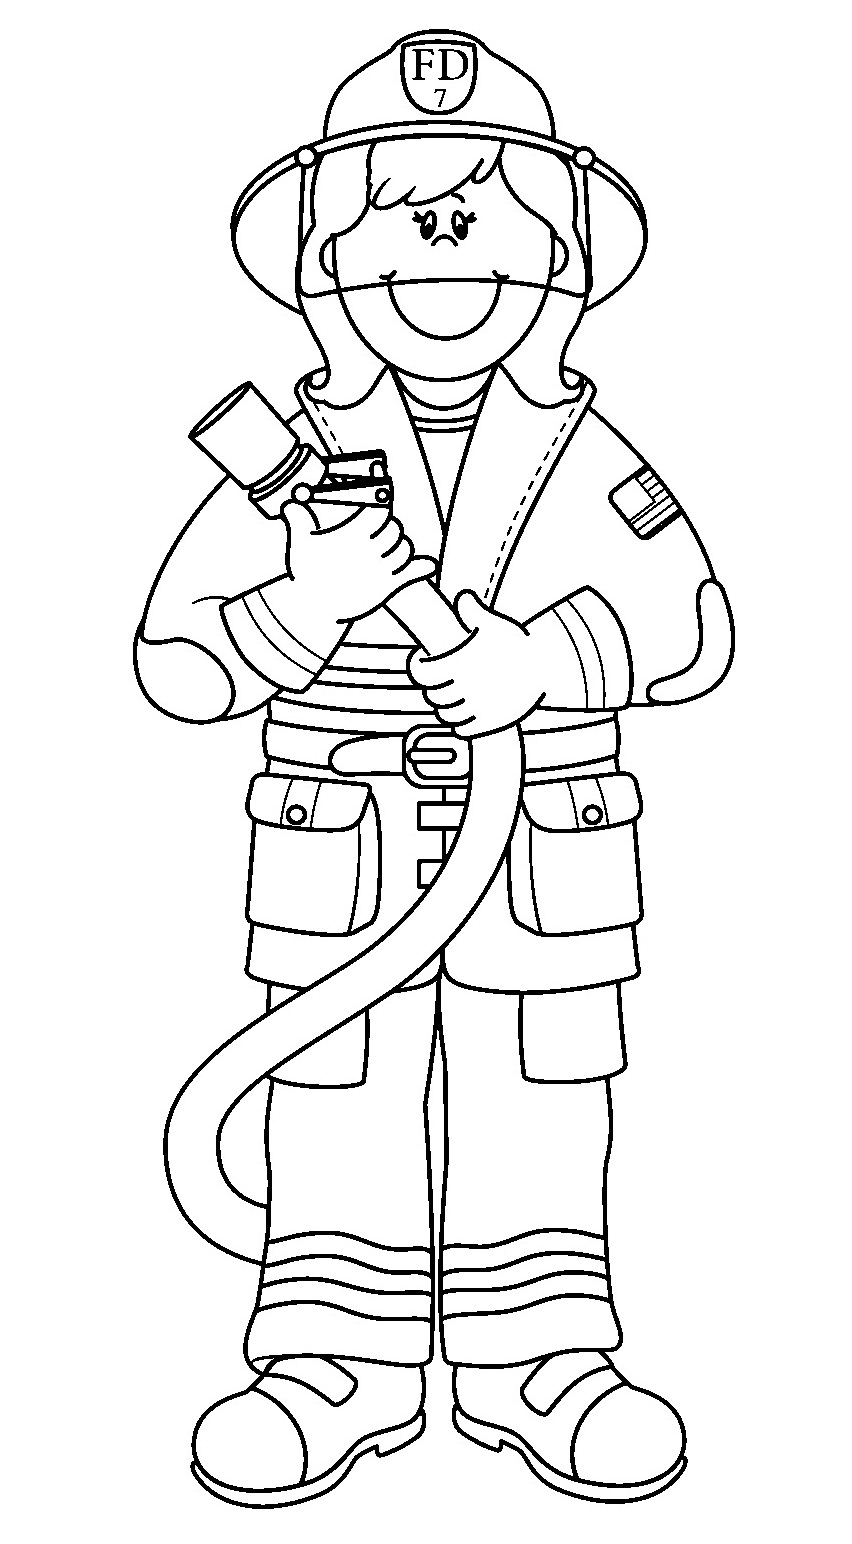 Community Helpers Coloring Pages New Community Helpers Coloring Pages Colin Bookman